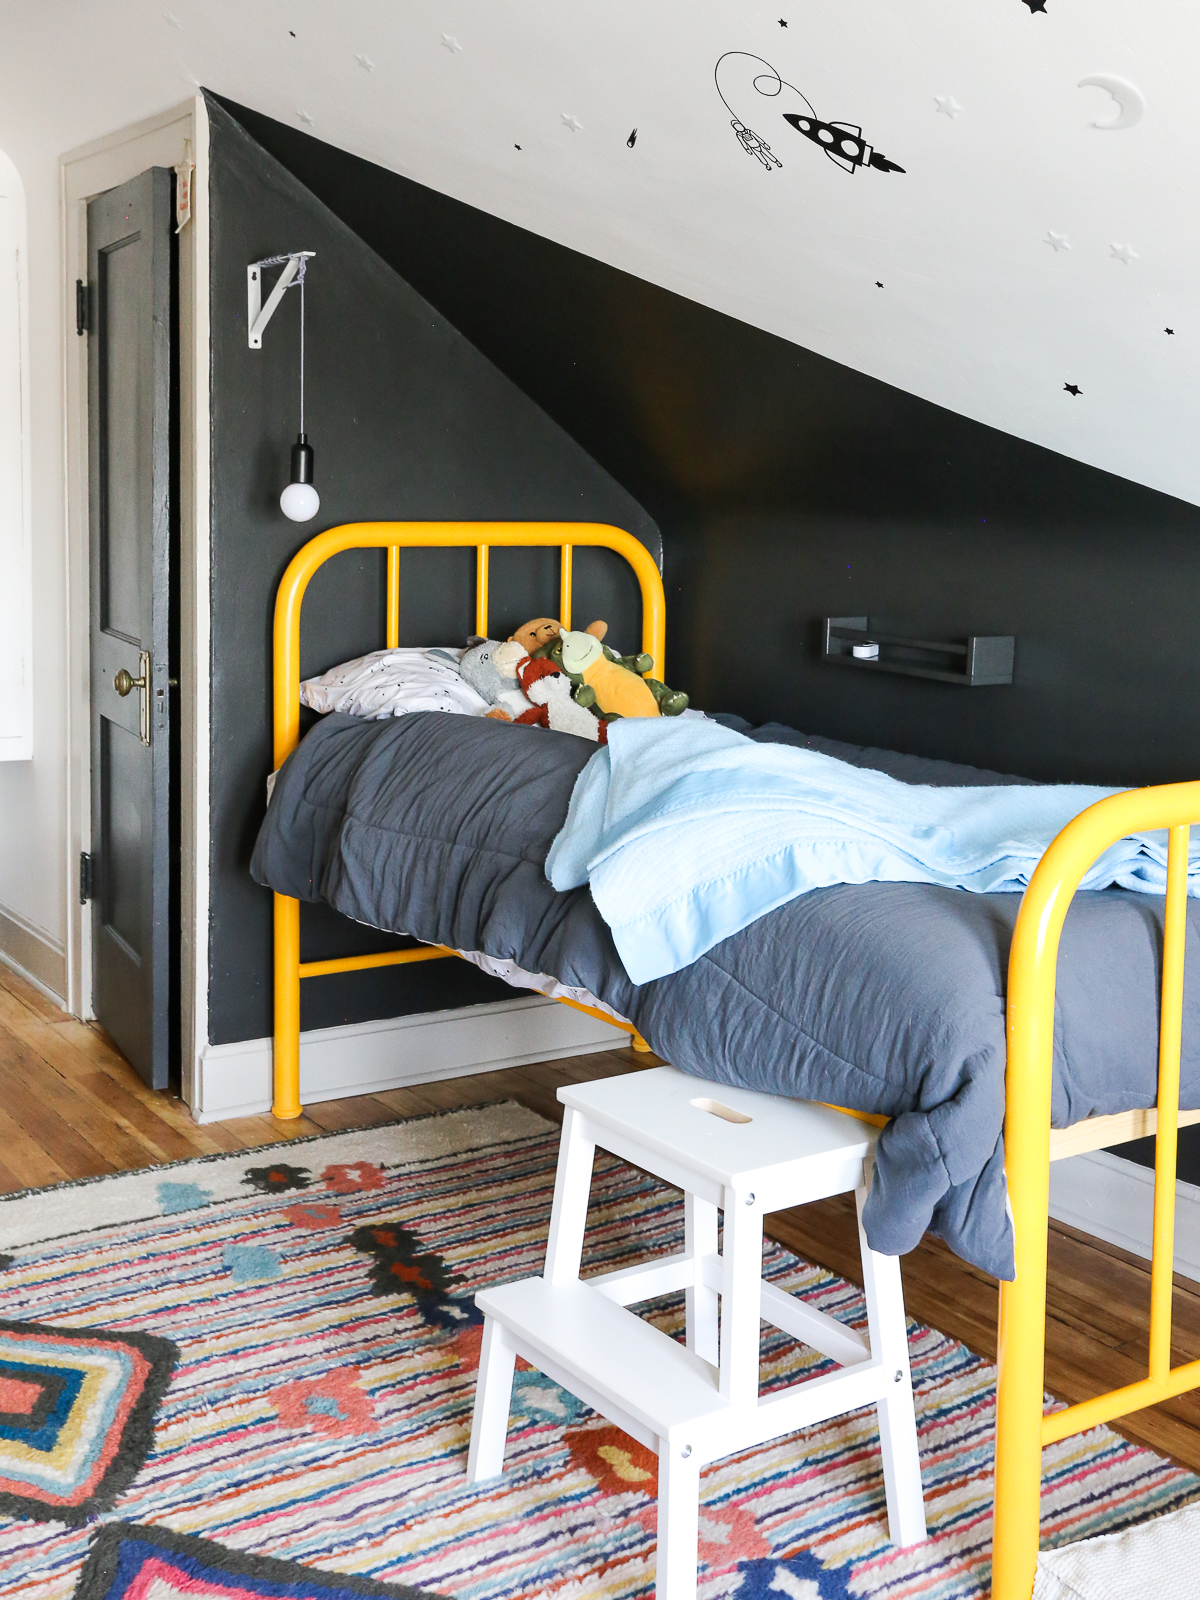 toddler room renovation reveal with wood floors, wool rug, and yellow metal bed